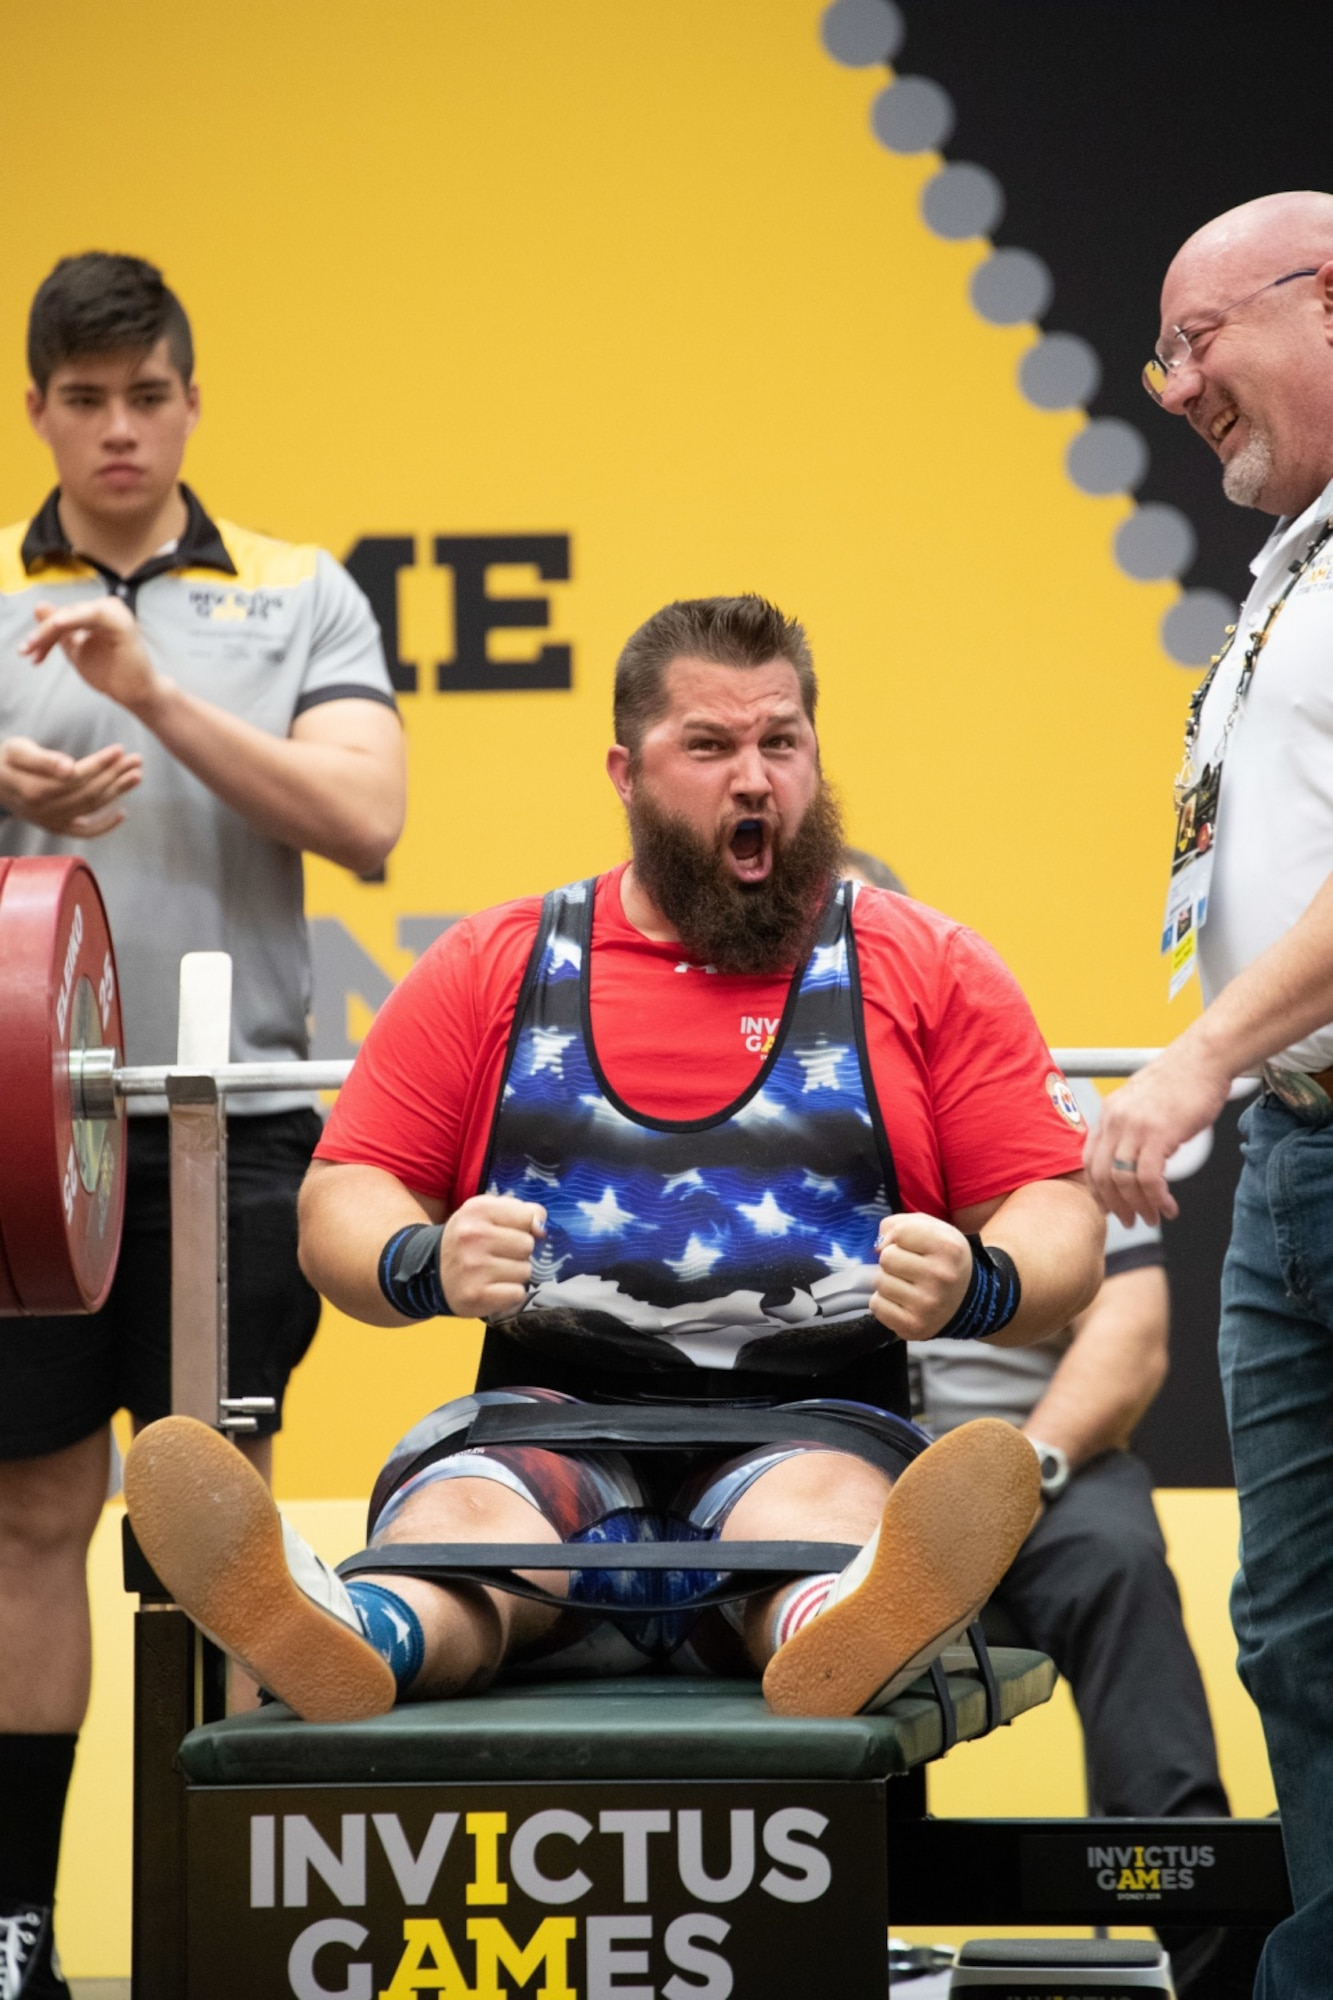 """Retired Capt. Lawrence """"Rob"""" Hufford, USAF, yells triumphantly after lifting 190 kg (418 lbs), setting a personal best in the heavyweight category of power-lifting at the 2018 Invictus Games. 500 wounded warriors from 18 countries gathered in Sydney, Australia to compete in adaptive sporting events from 21-27 October 2018."""